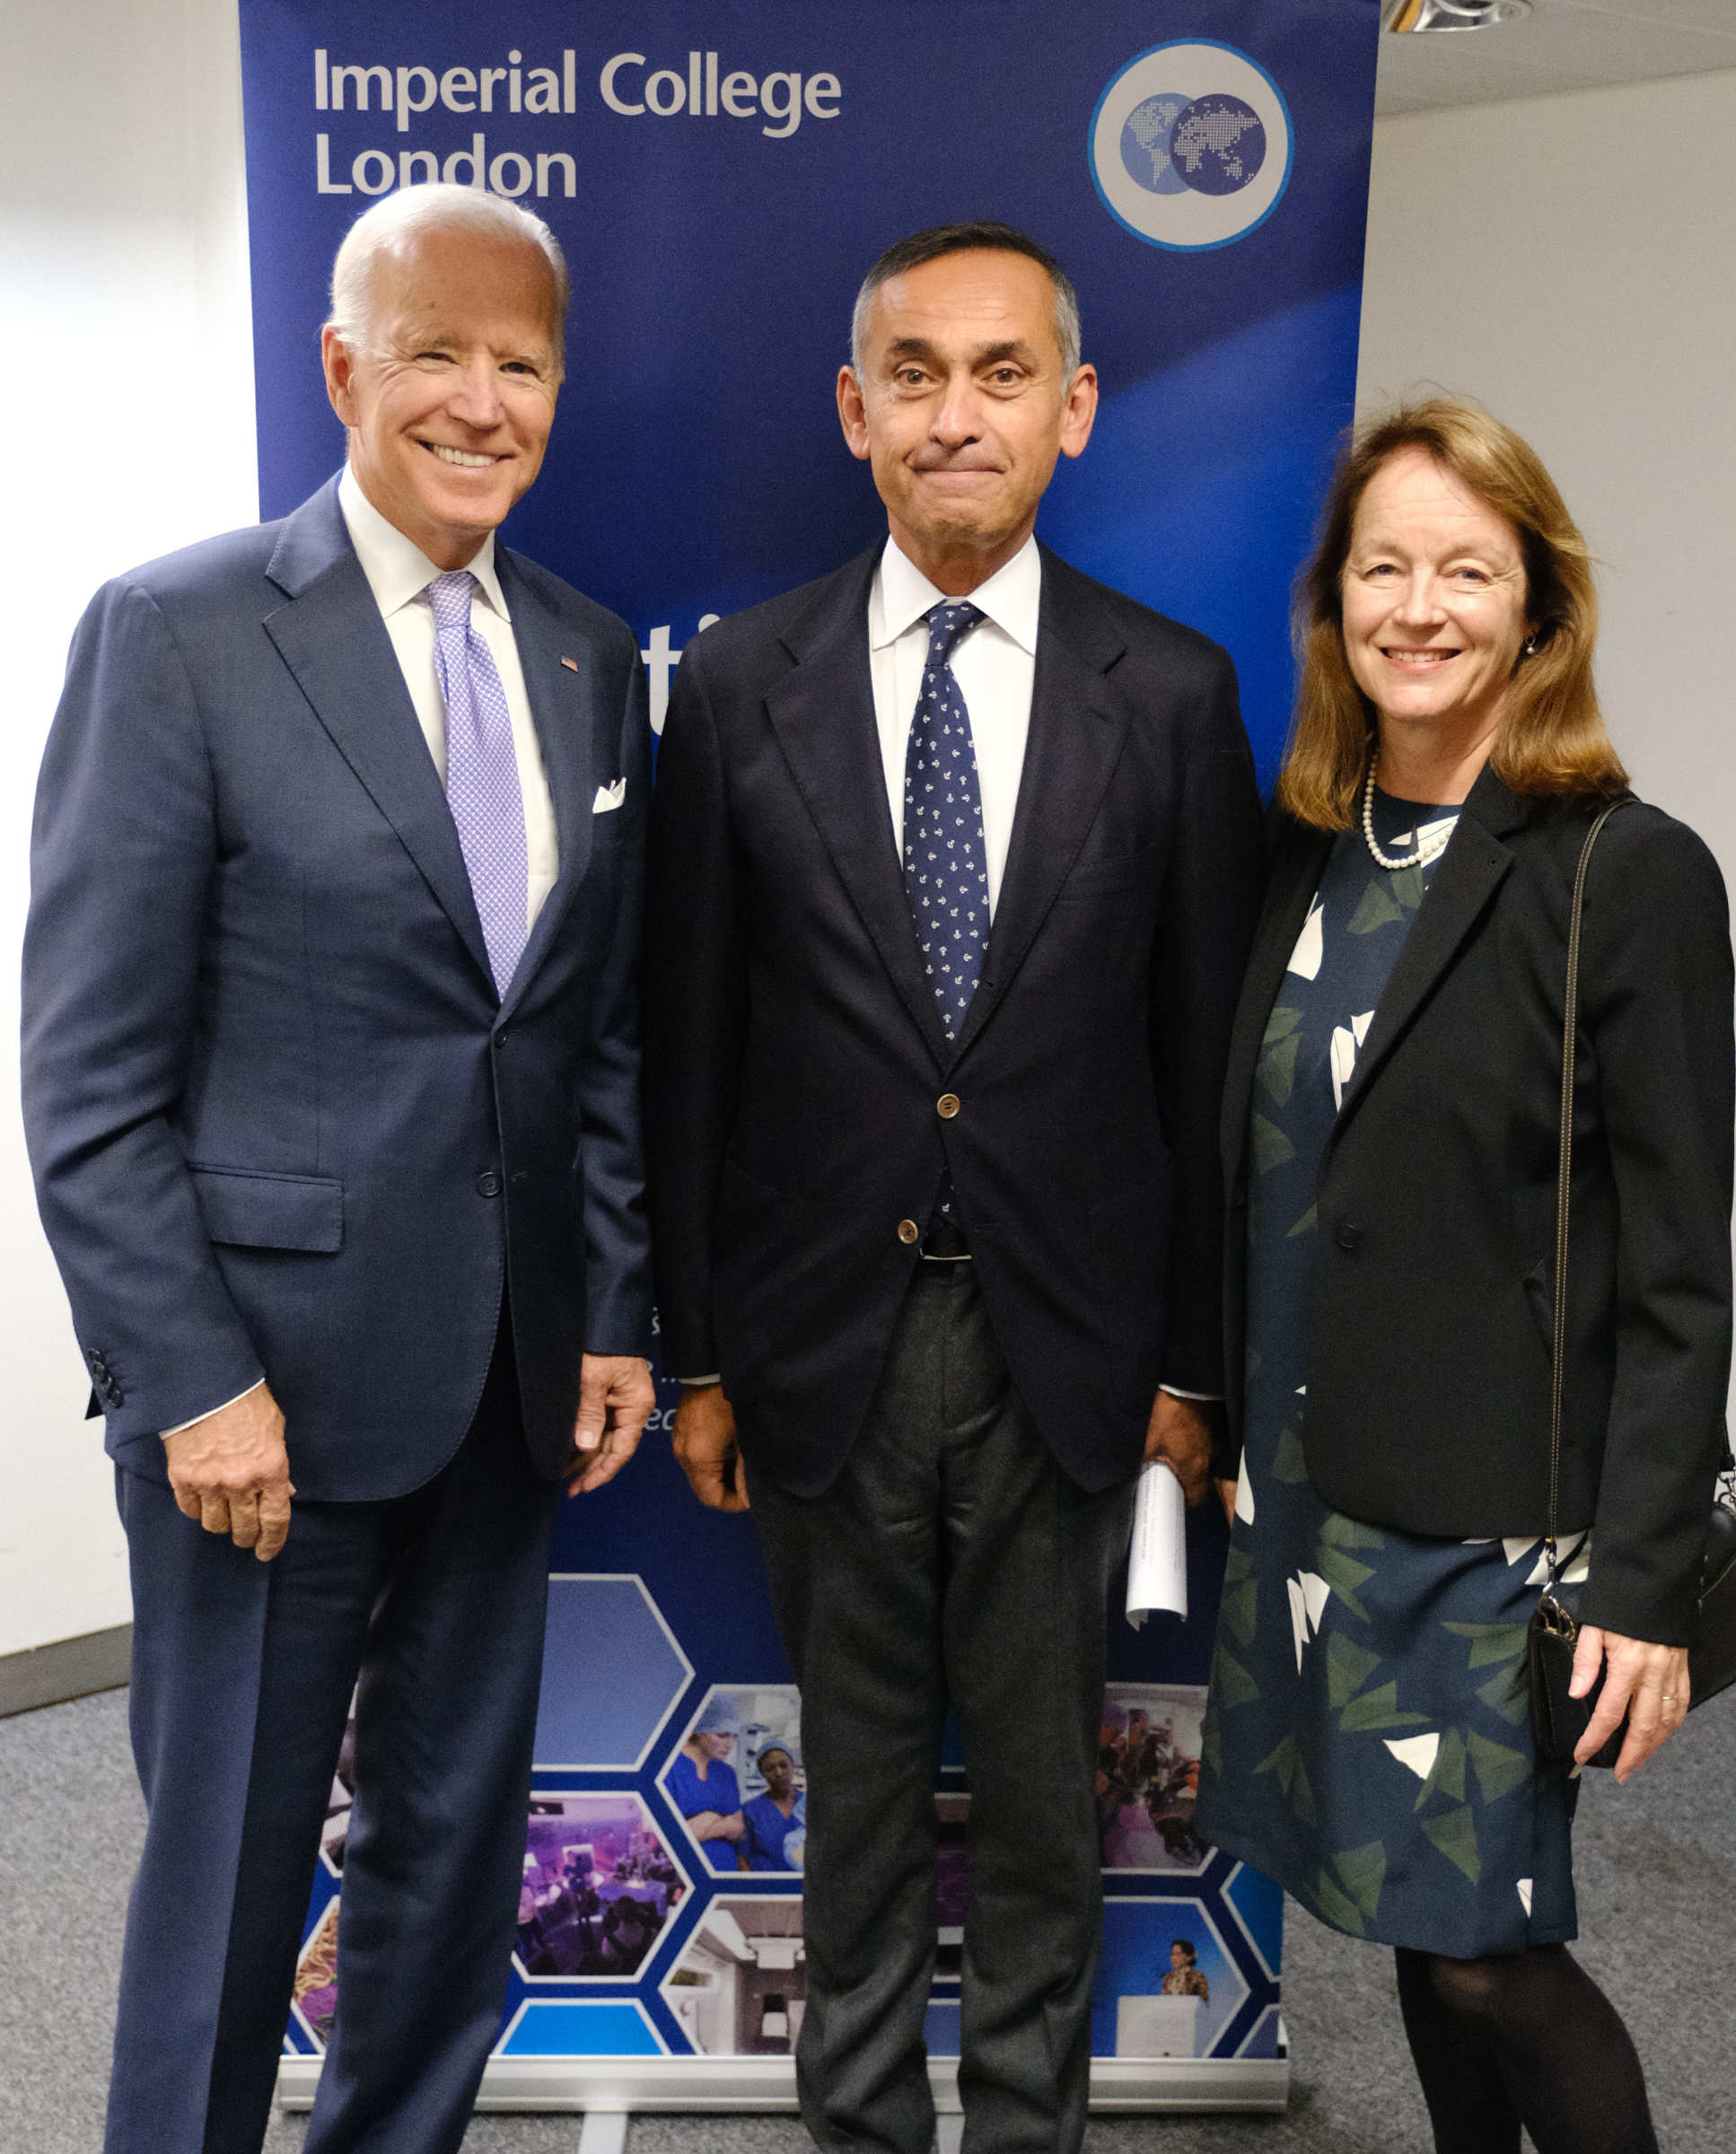 Vice President Biden met President Gast and Lord Darzi to discuss Imperial's new cancer centre